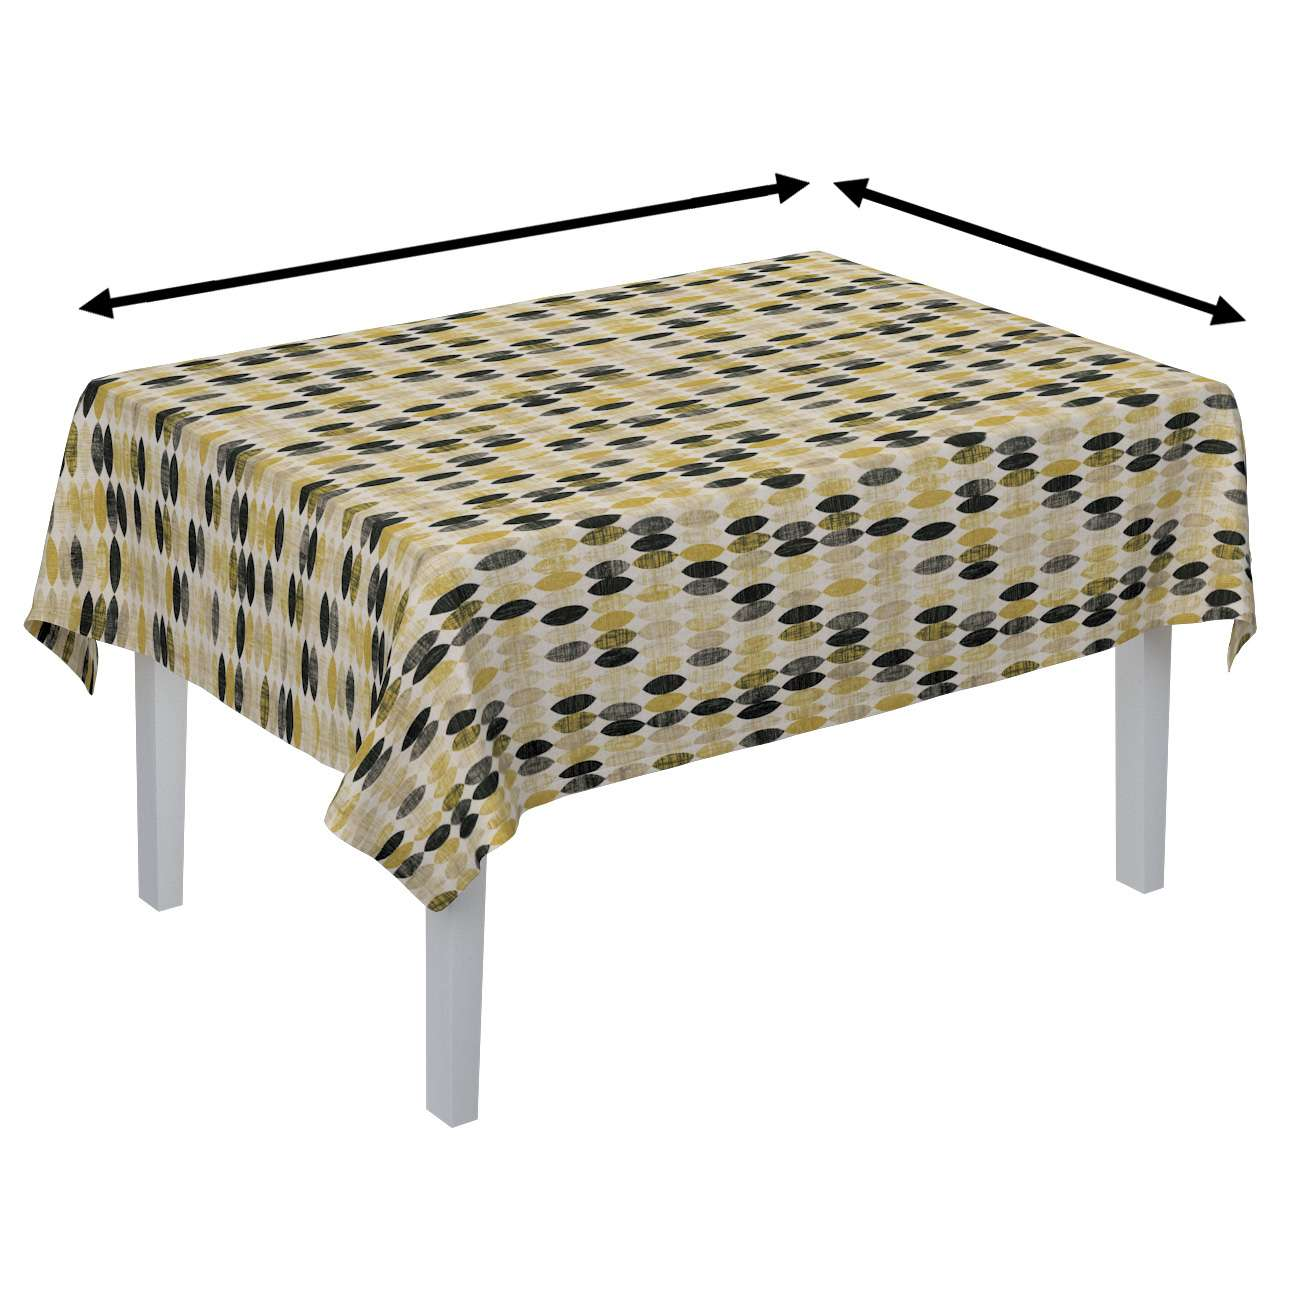 Rectangular tablecloth in collection Modern, fabric: 142-99